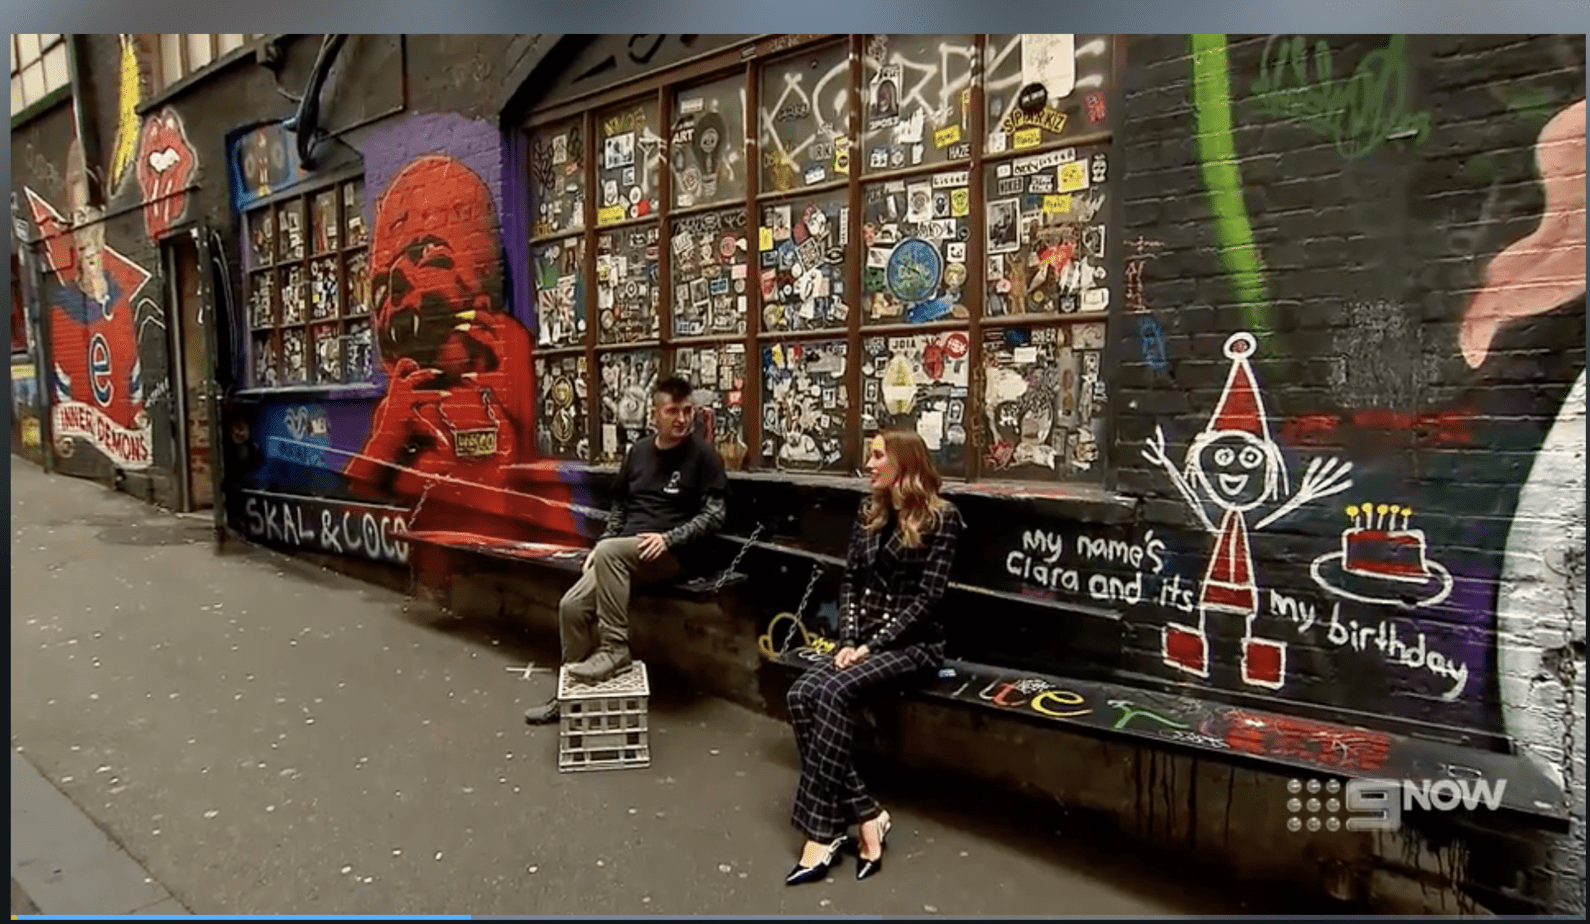 Man and woman in Melbourne Laneway talking about street art.